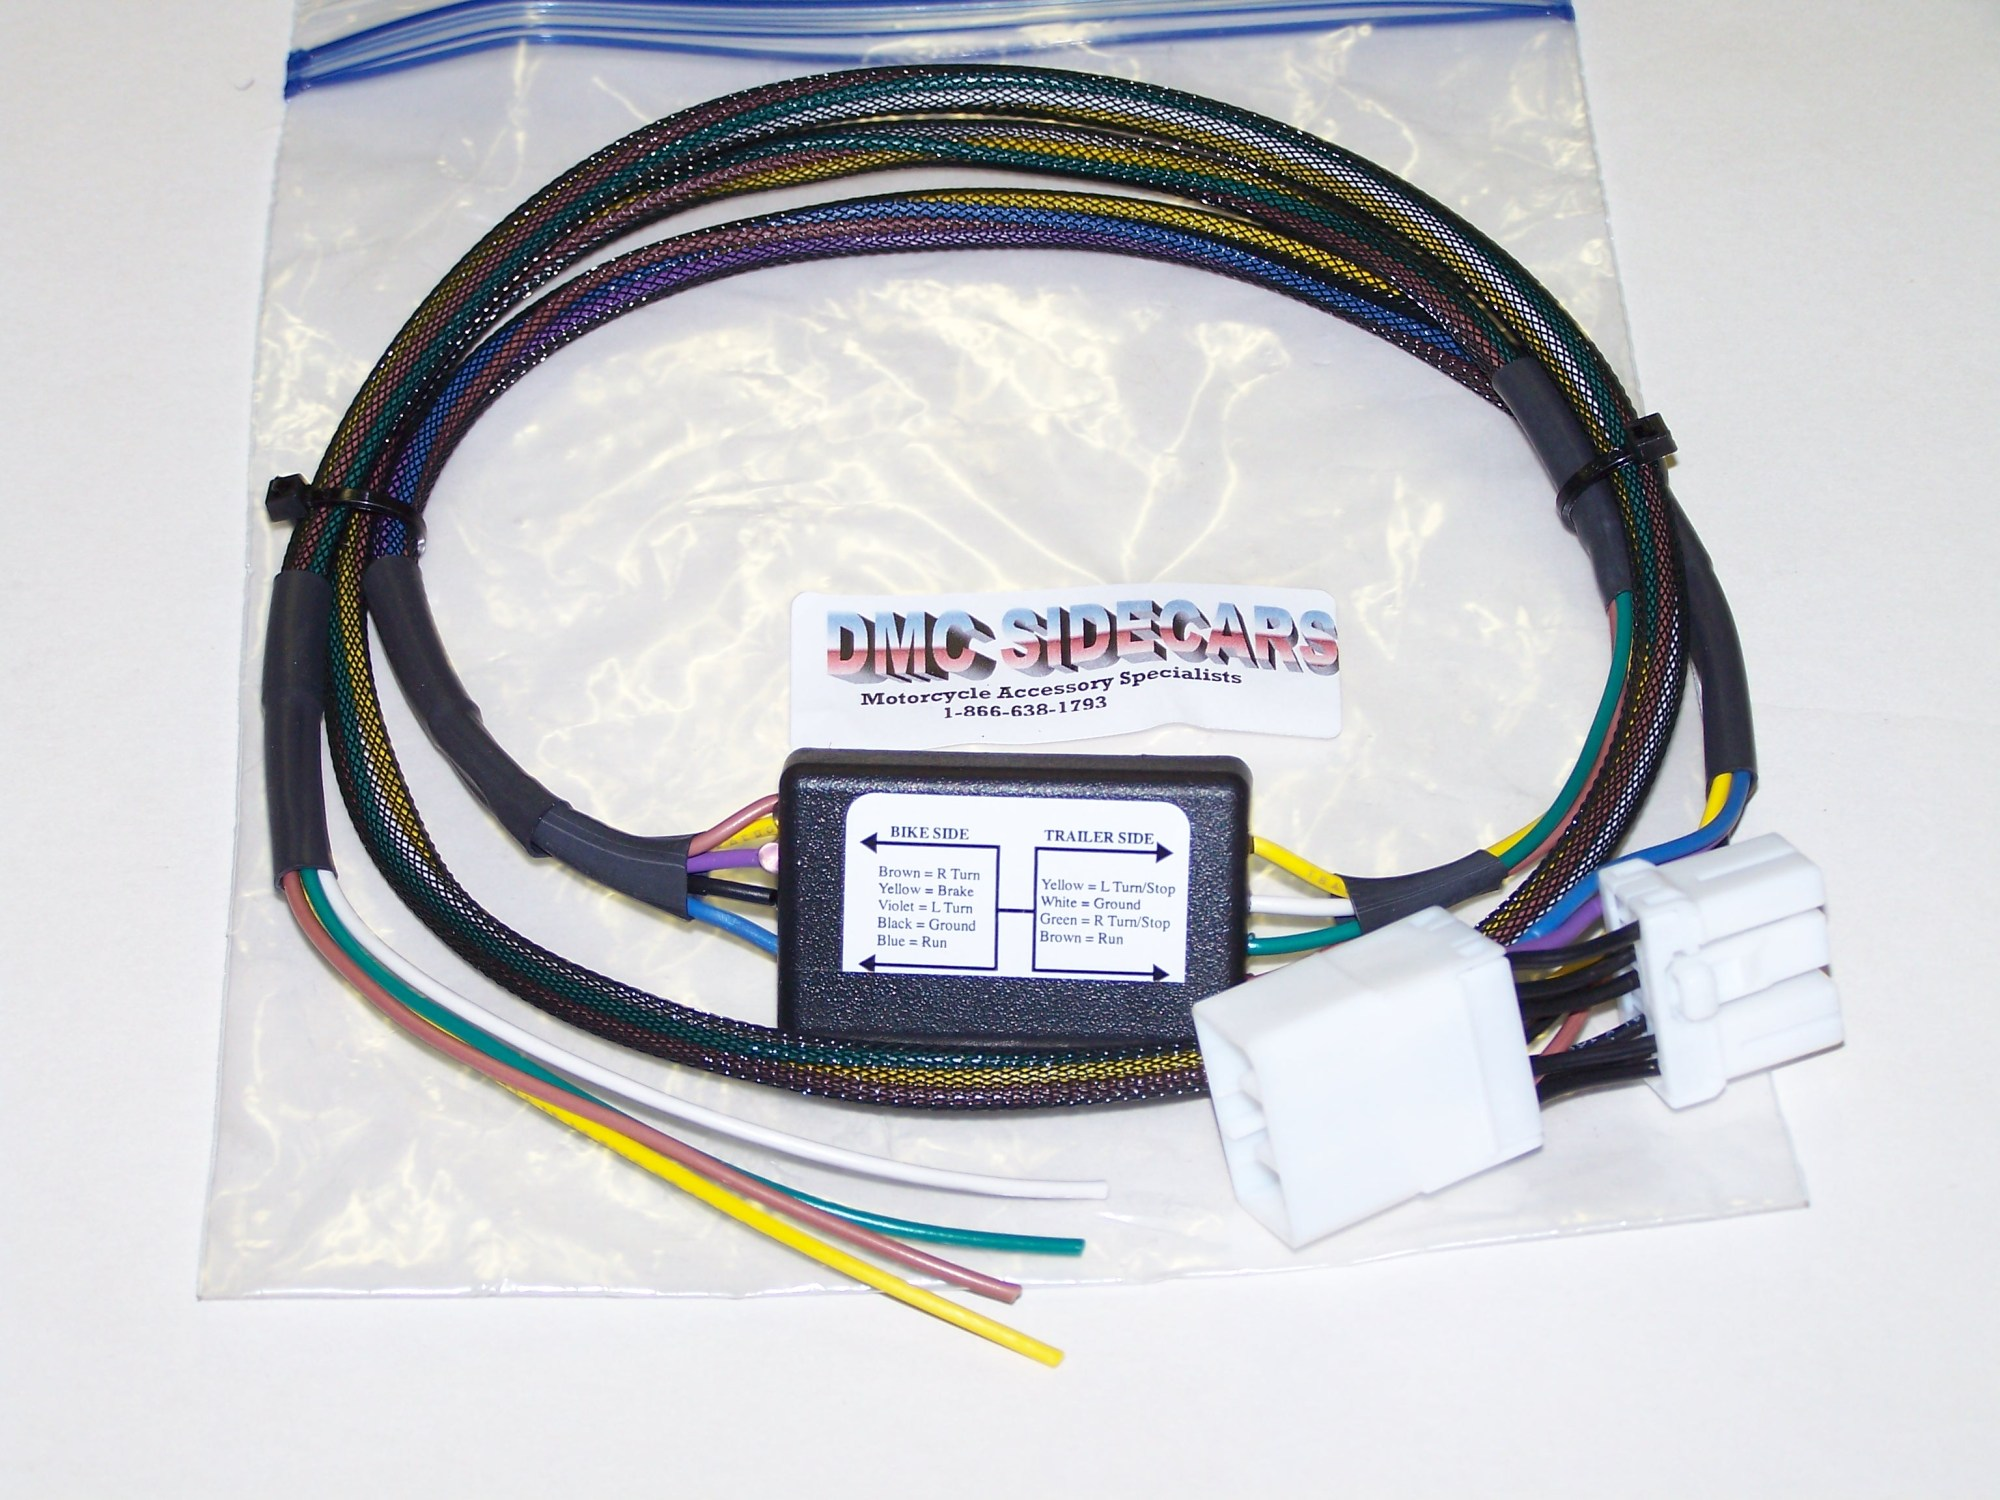 hight resolution of harley davidson trike 5 to 4 wire convertor this basic wiring harness automatically converts from a 5 wire system to a 4 wire system saving the headaches